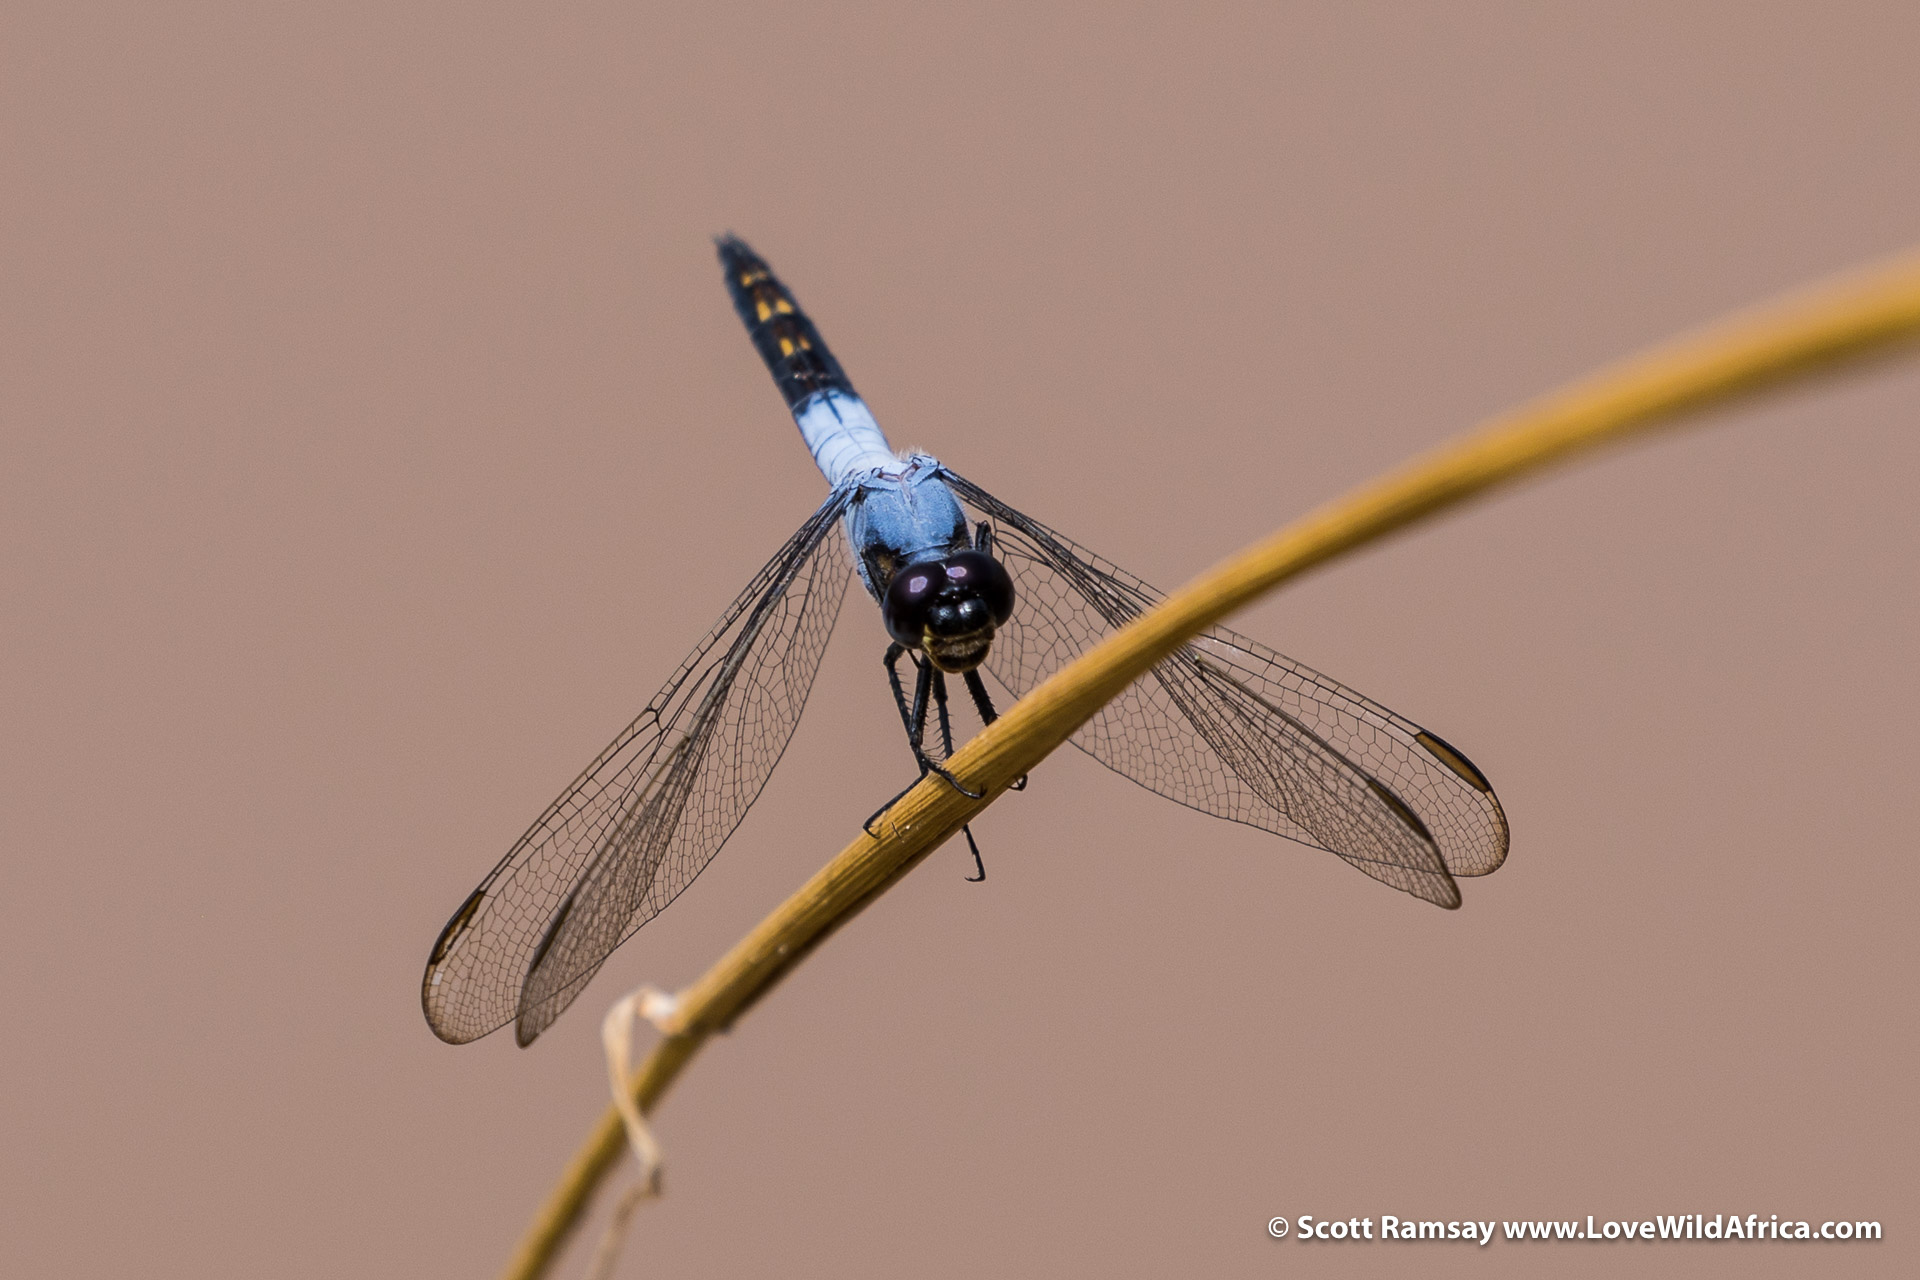 The benefits of having more freedom on safari is being able to notice the small wonders...like this dragonfly alongside the Ewaso Ngiro River